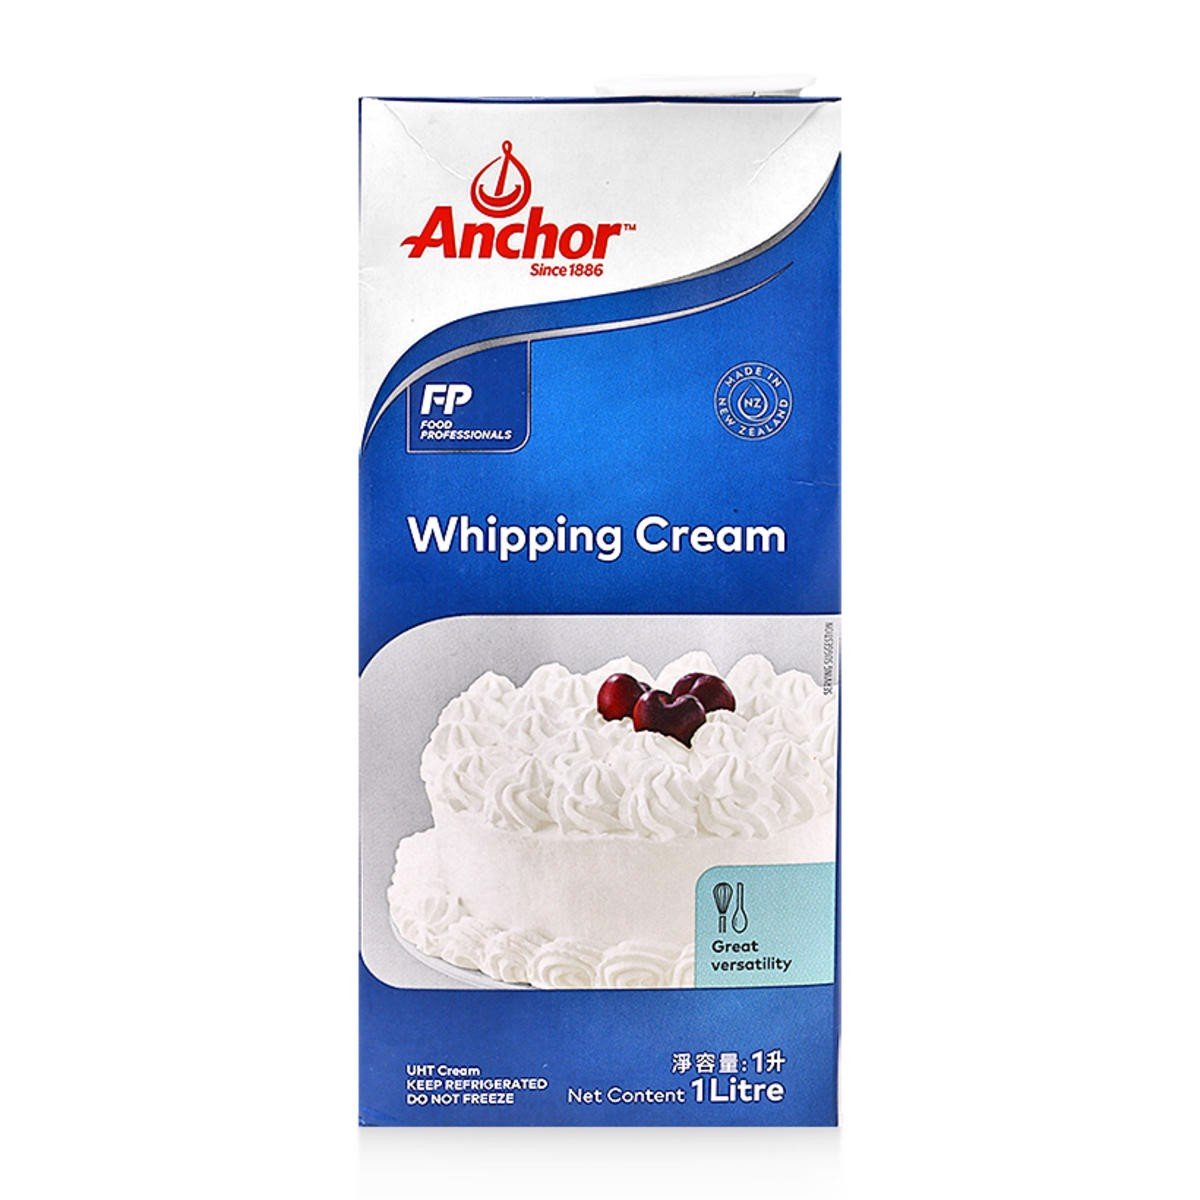 Whipping Cream Anchor hộp 1L